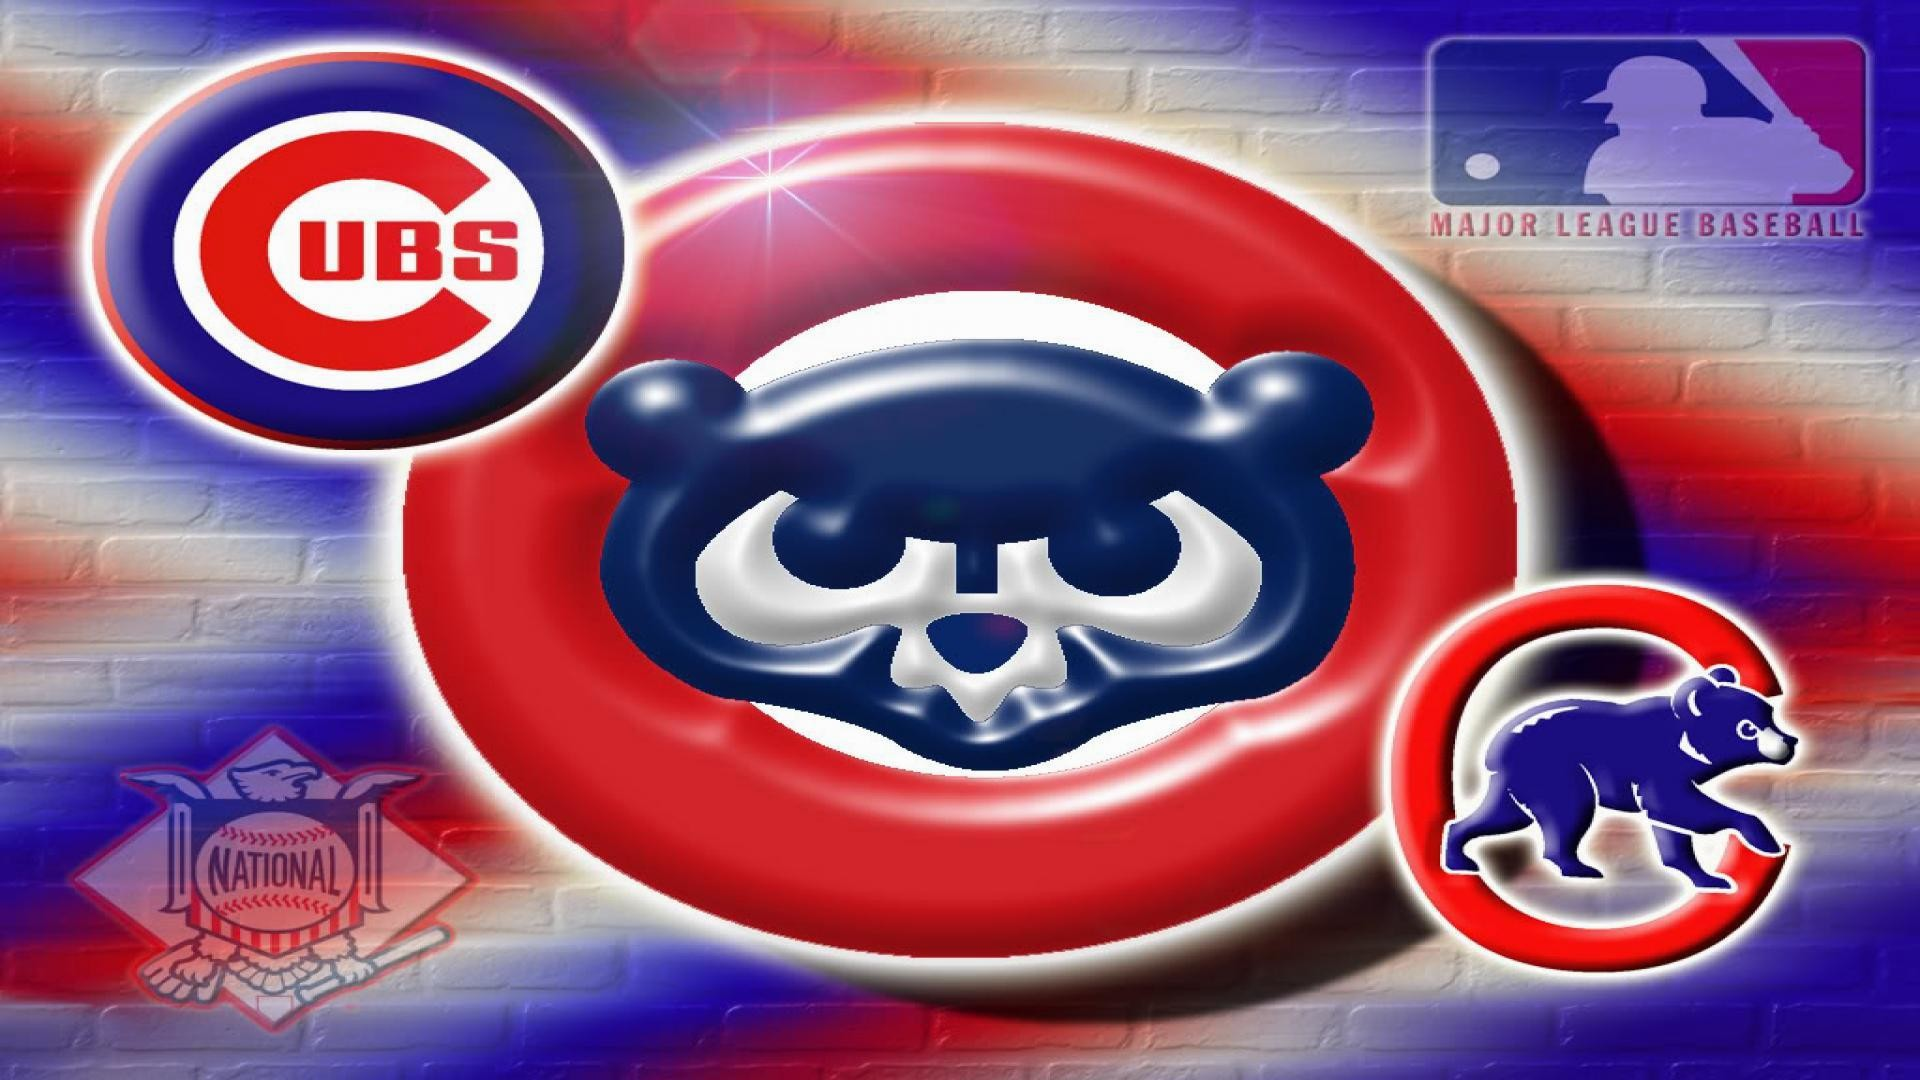 Chicago-Cubs-CHICAGO-CUBS-mlb-baseball-background-wallpaper-